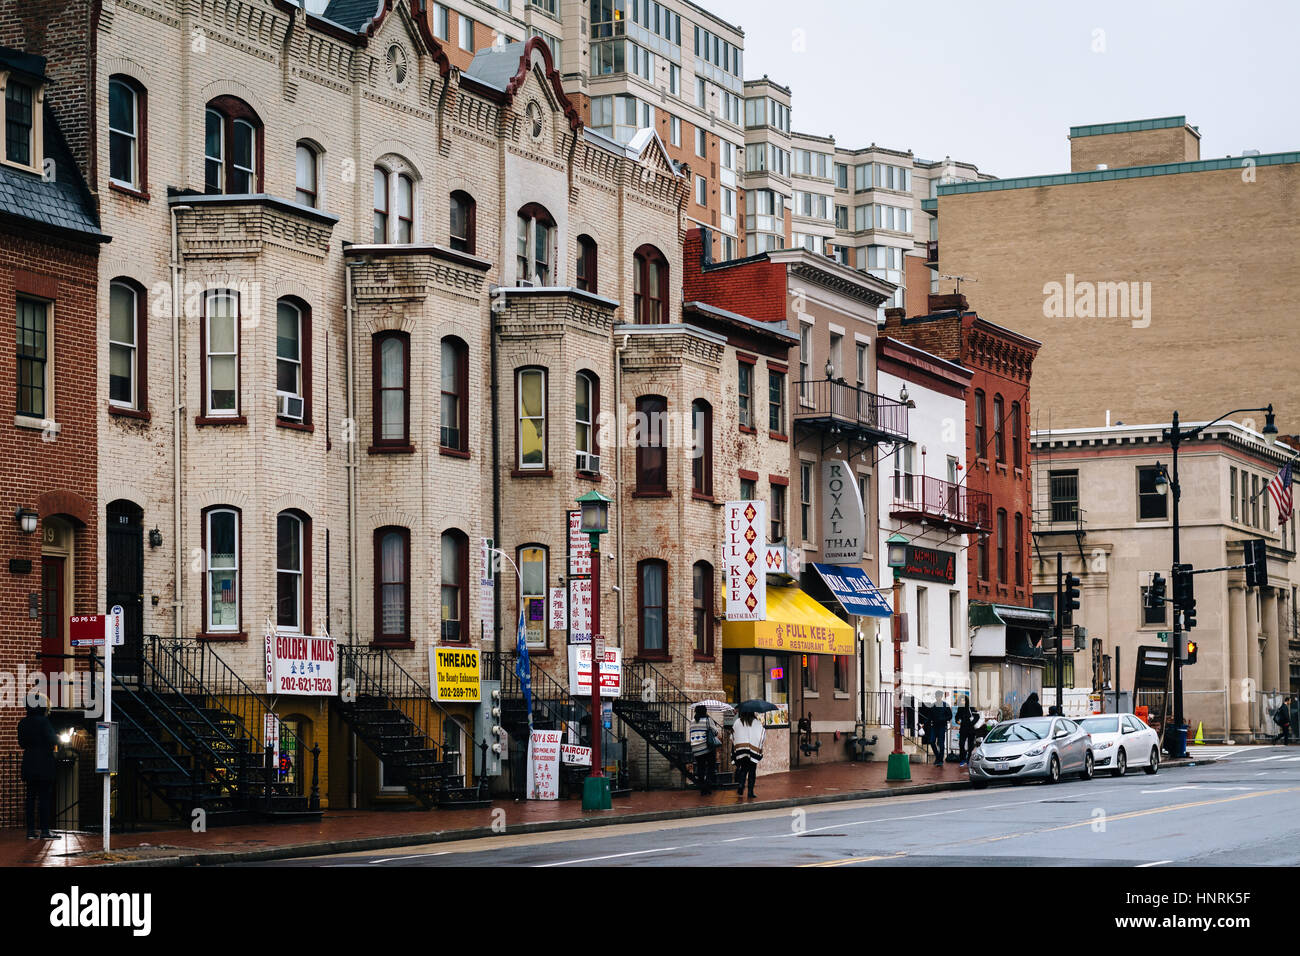 Businesses On H Street In Chinatown In Washington Dc Stock Photo